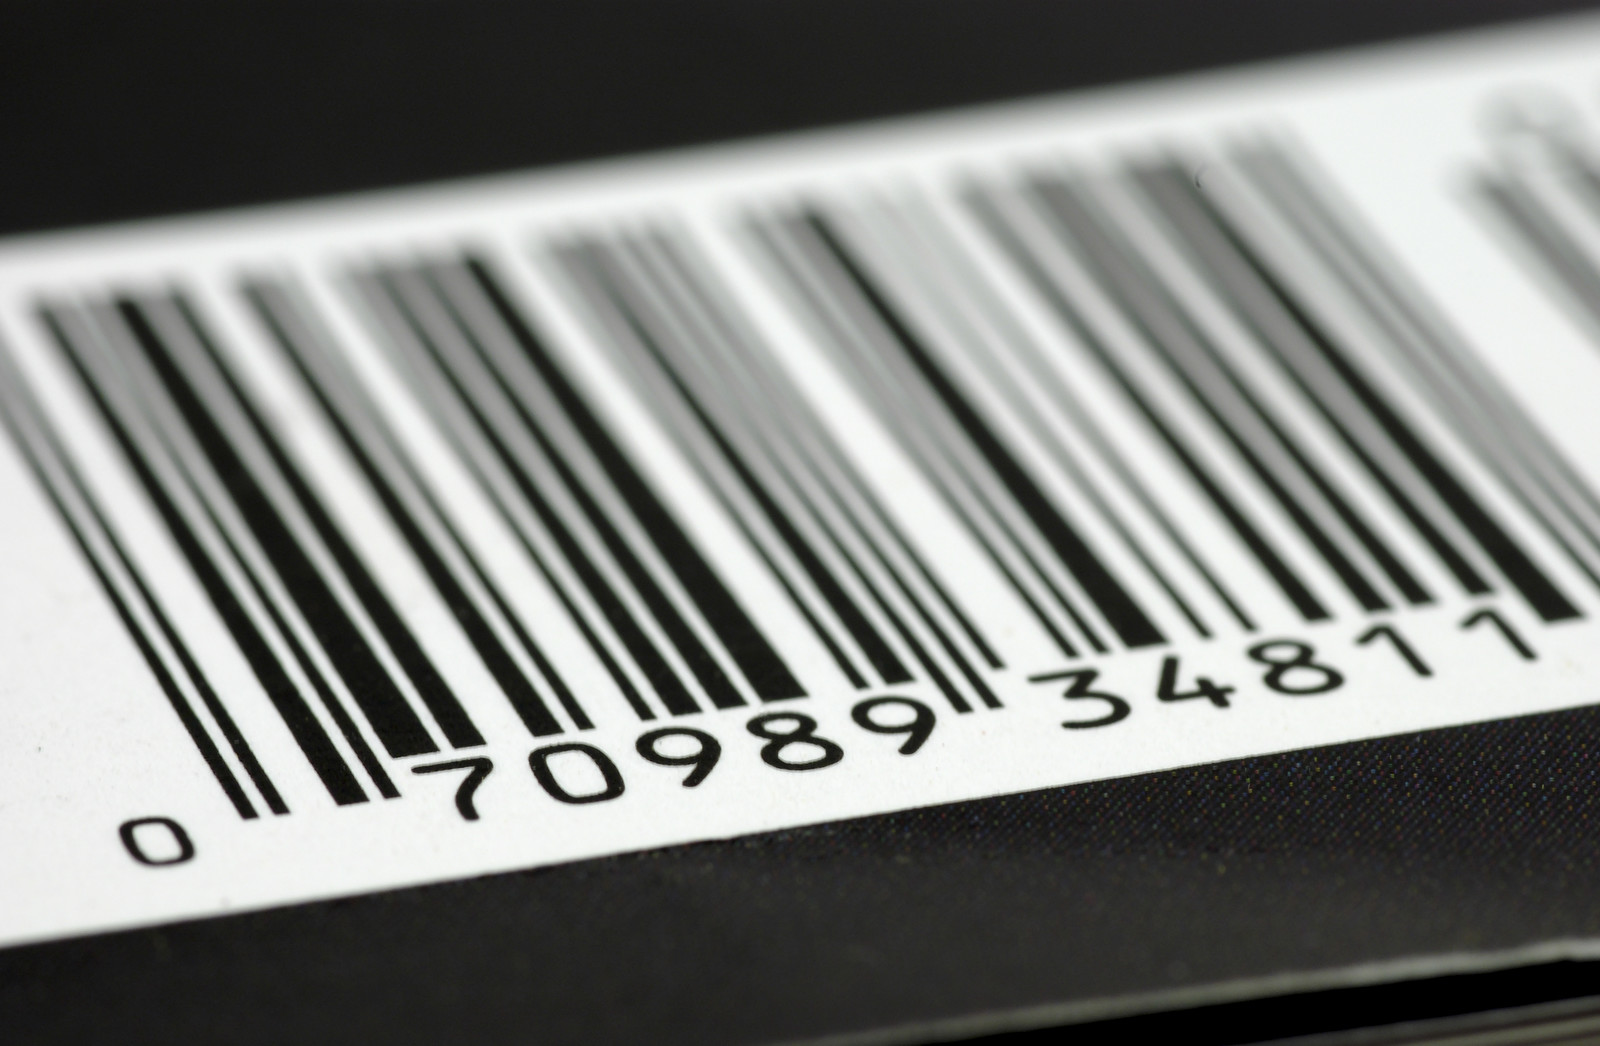 Black background with an up close shot of a bar code